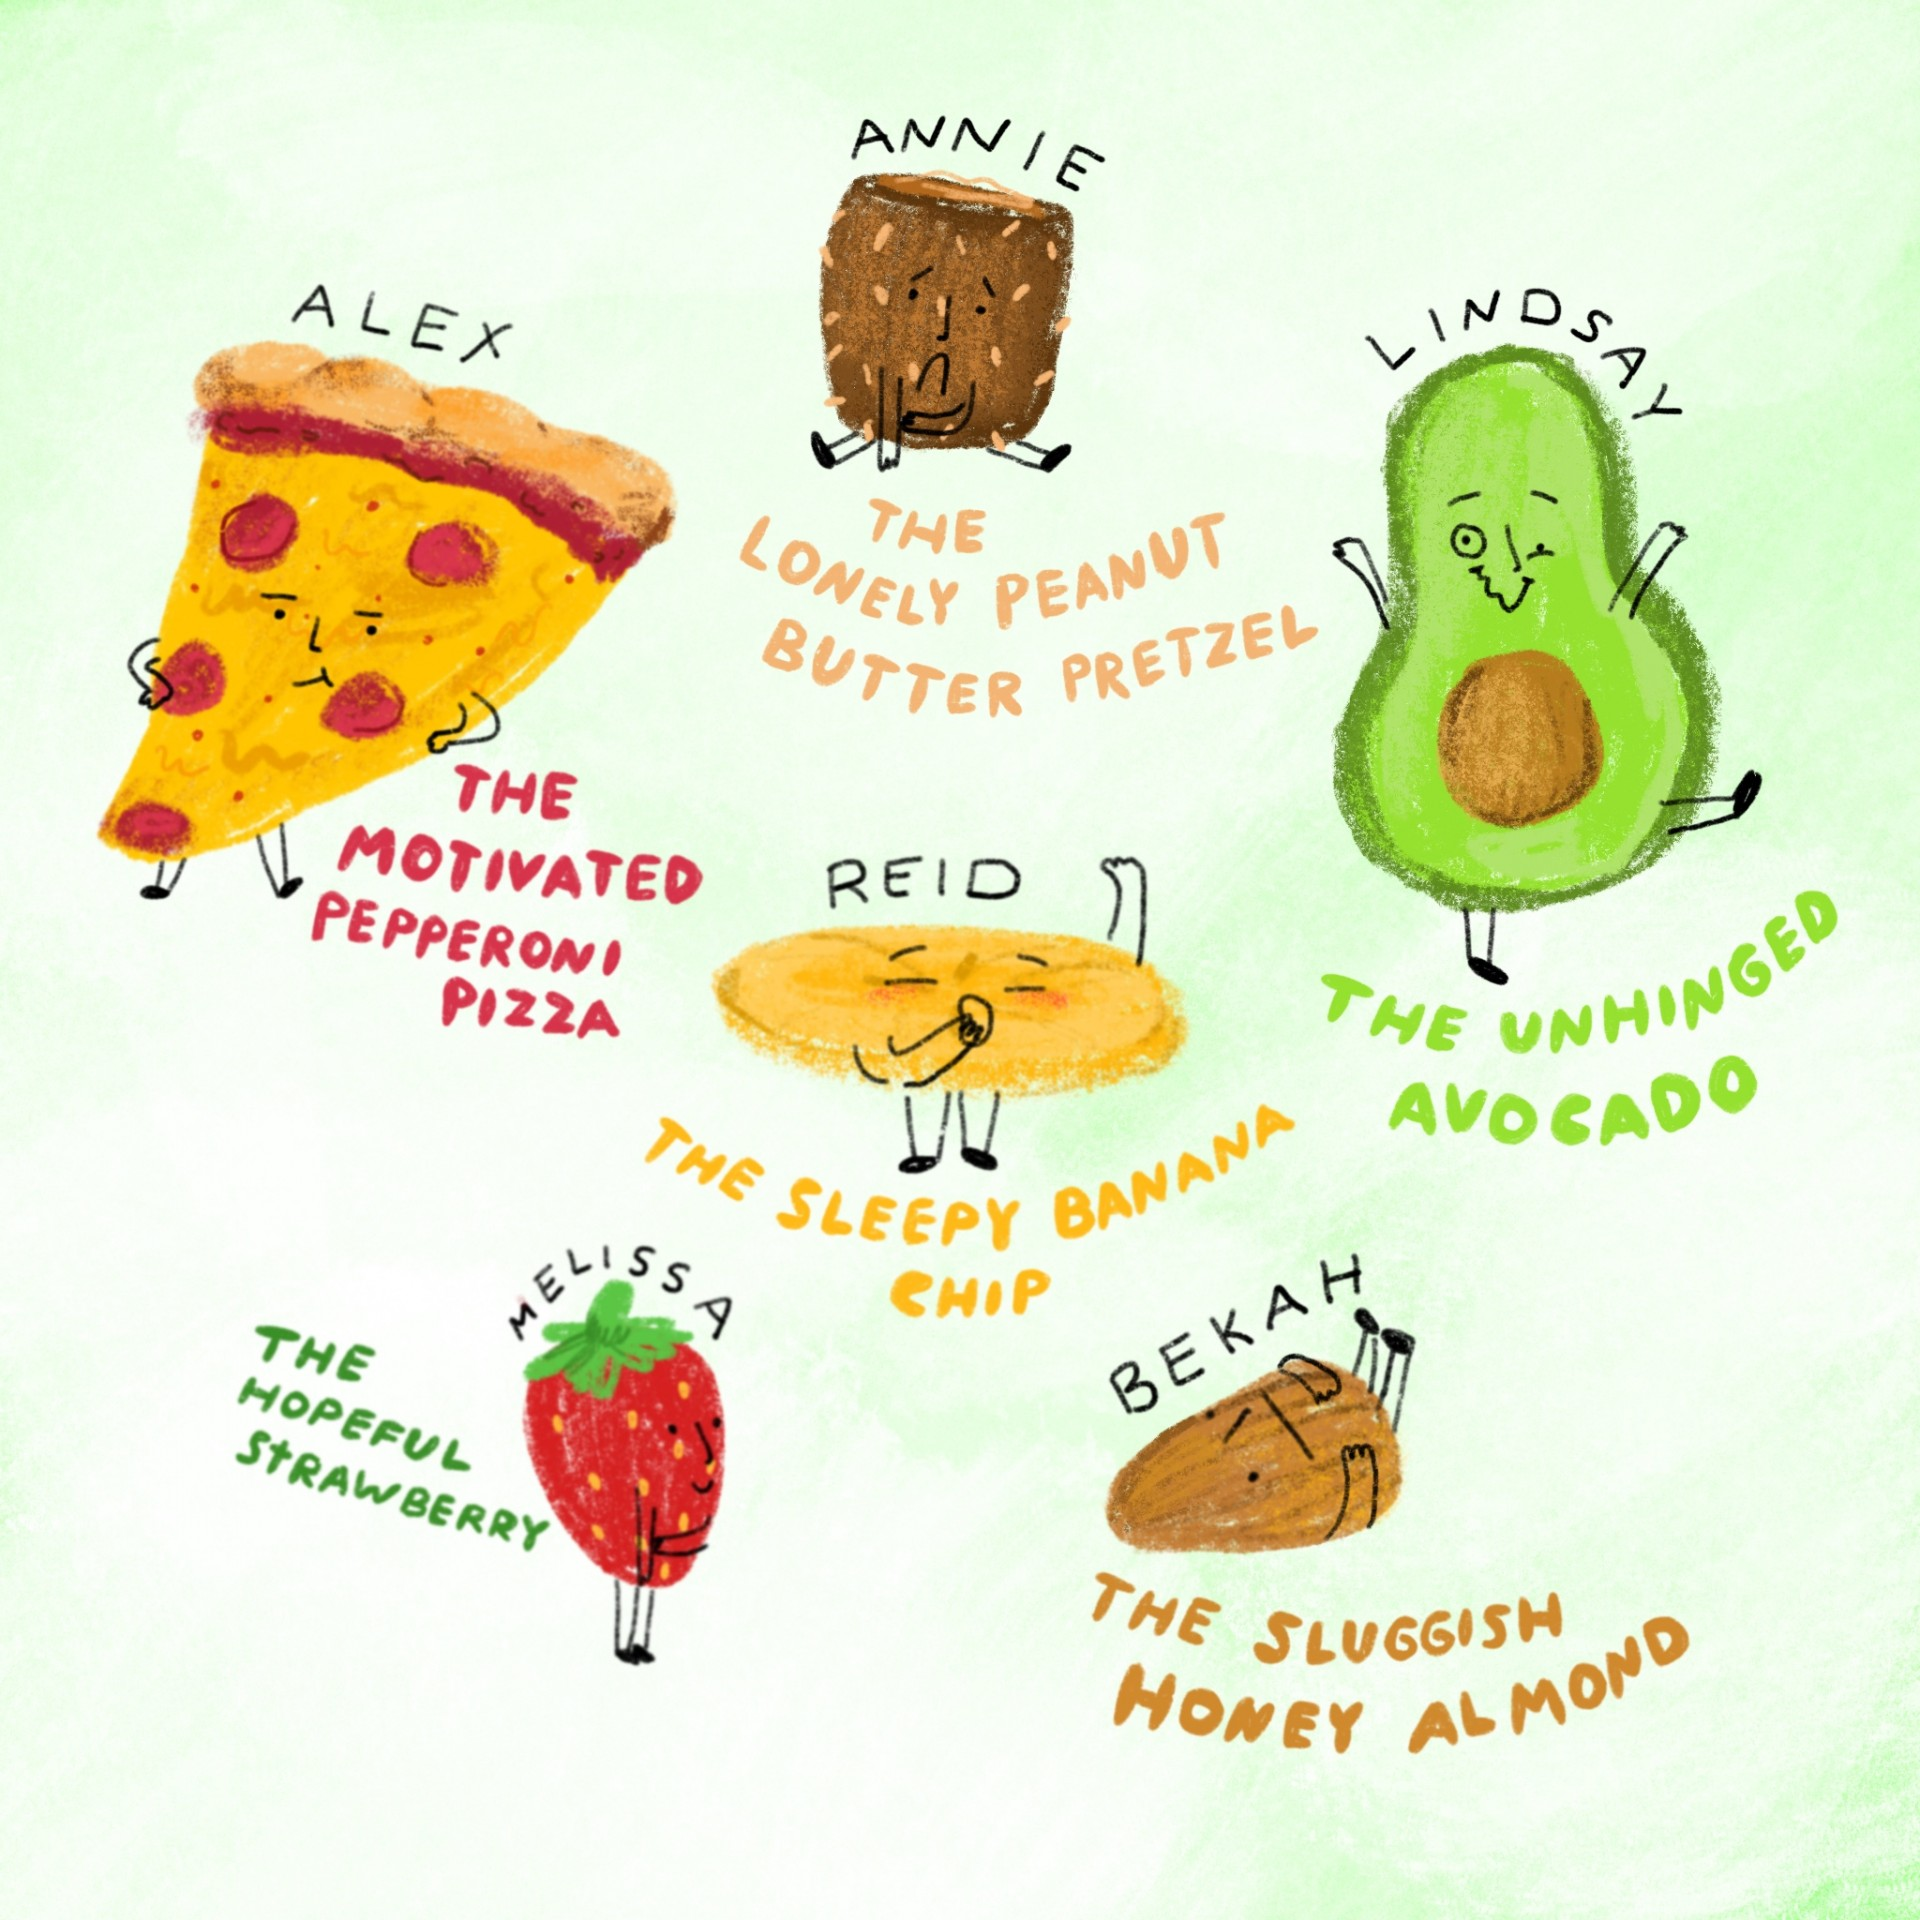 An assortment of drawings of emotional foods. Each drawing has a name and a description written underneath. Green background and illustrations are drawn in color